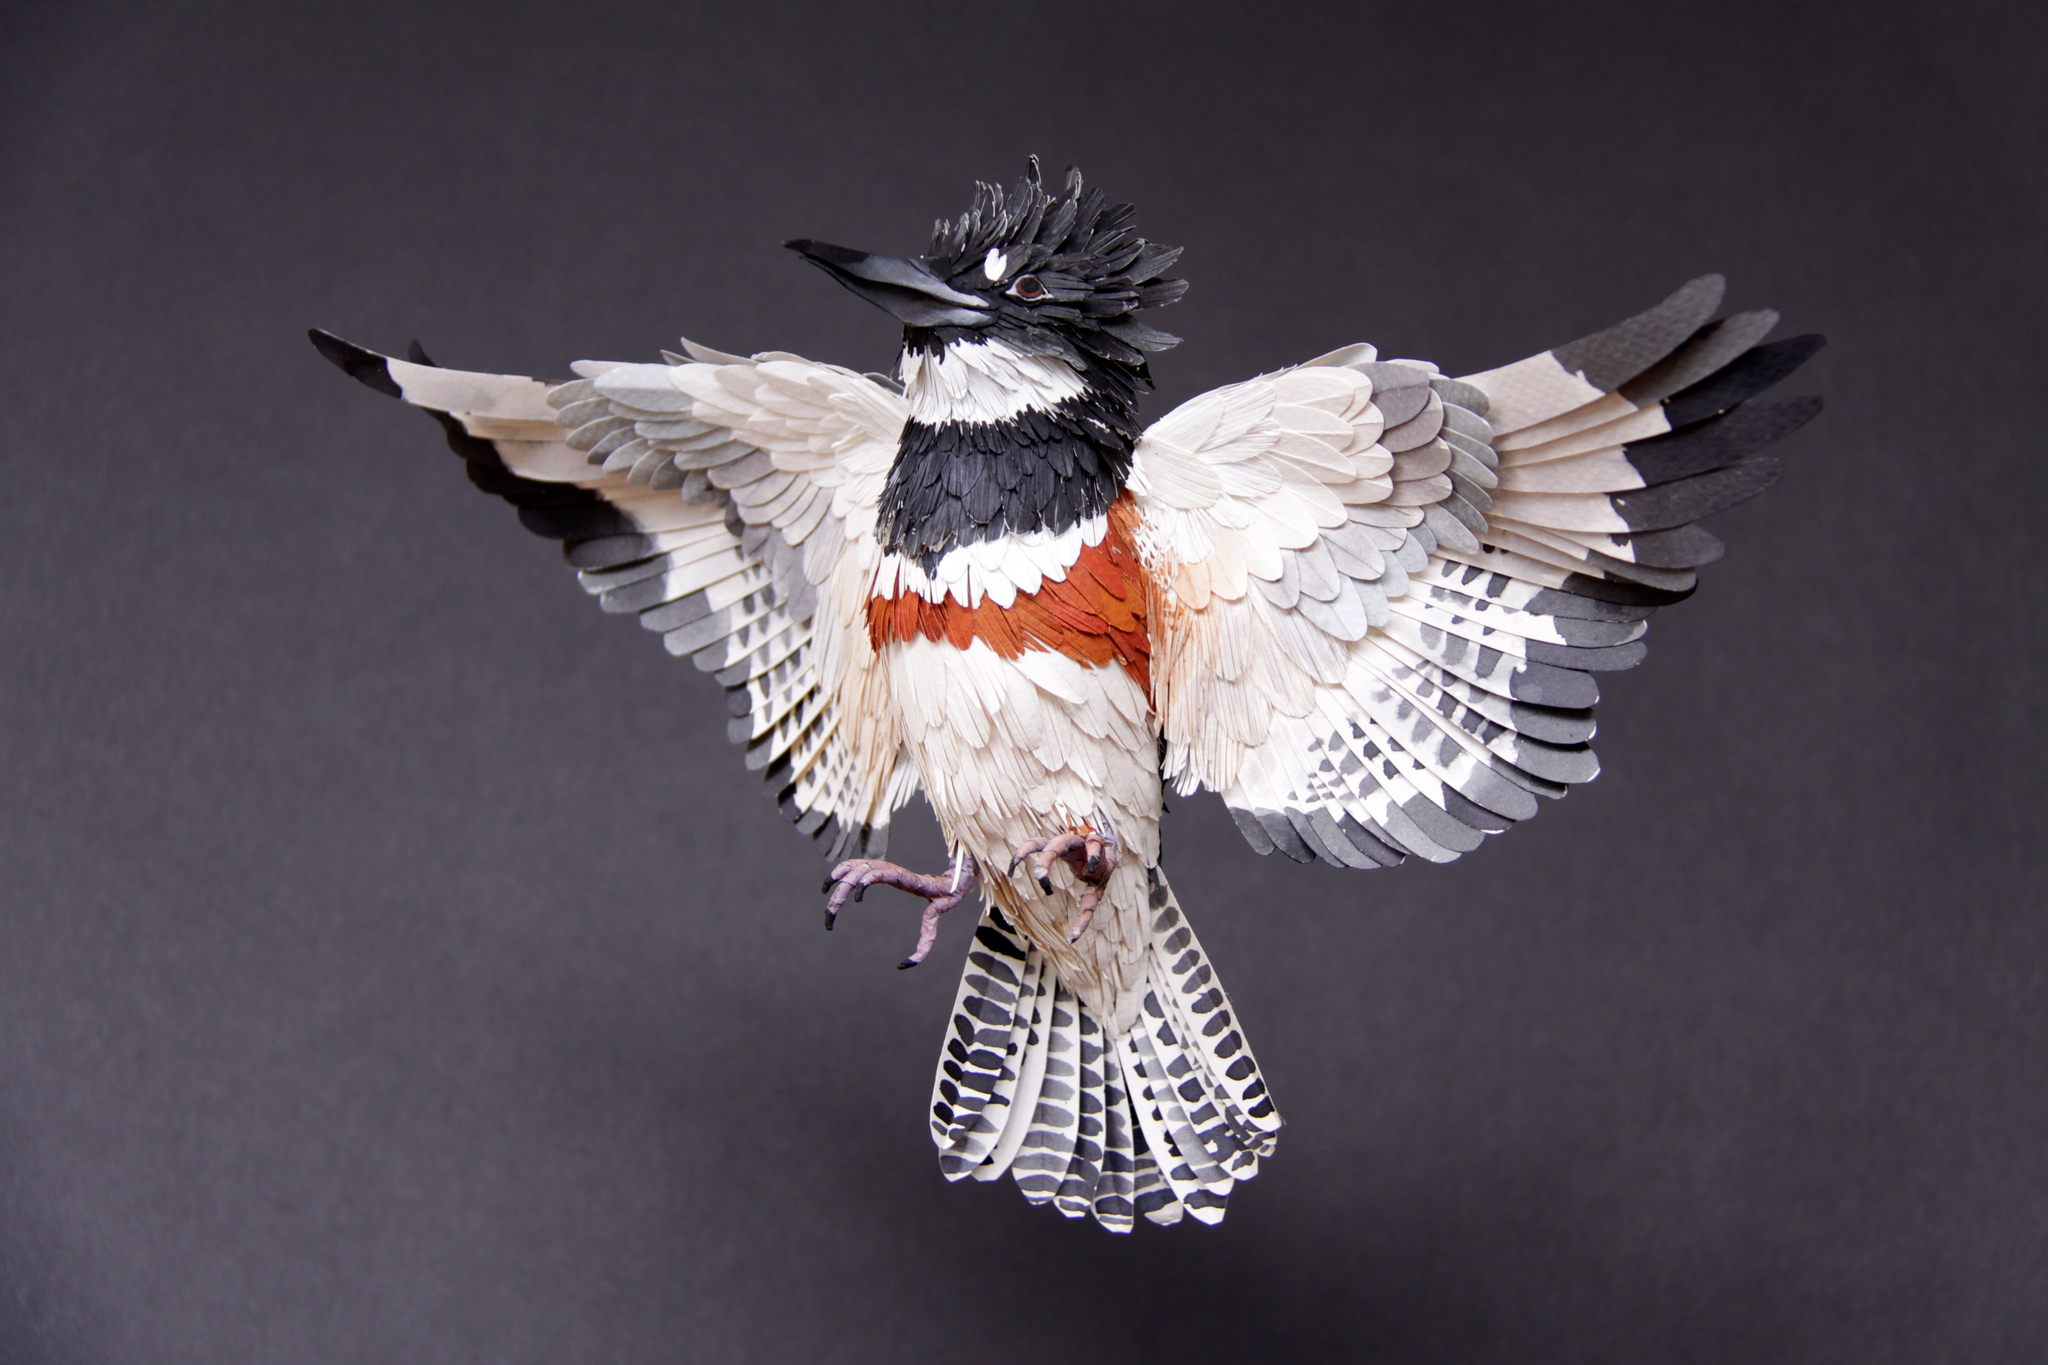 Paper Bird Sculpture Unbelievable Paper Birds Sculptures By Diana Beltran Herrera